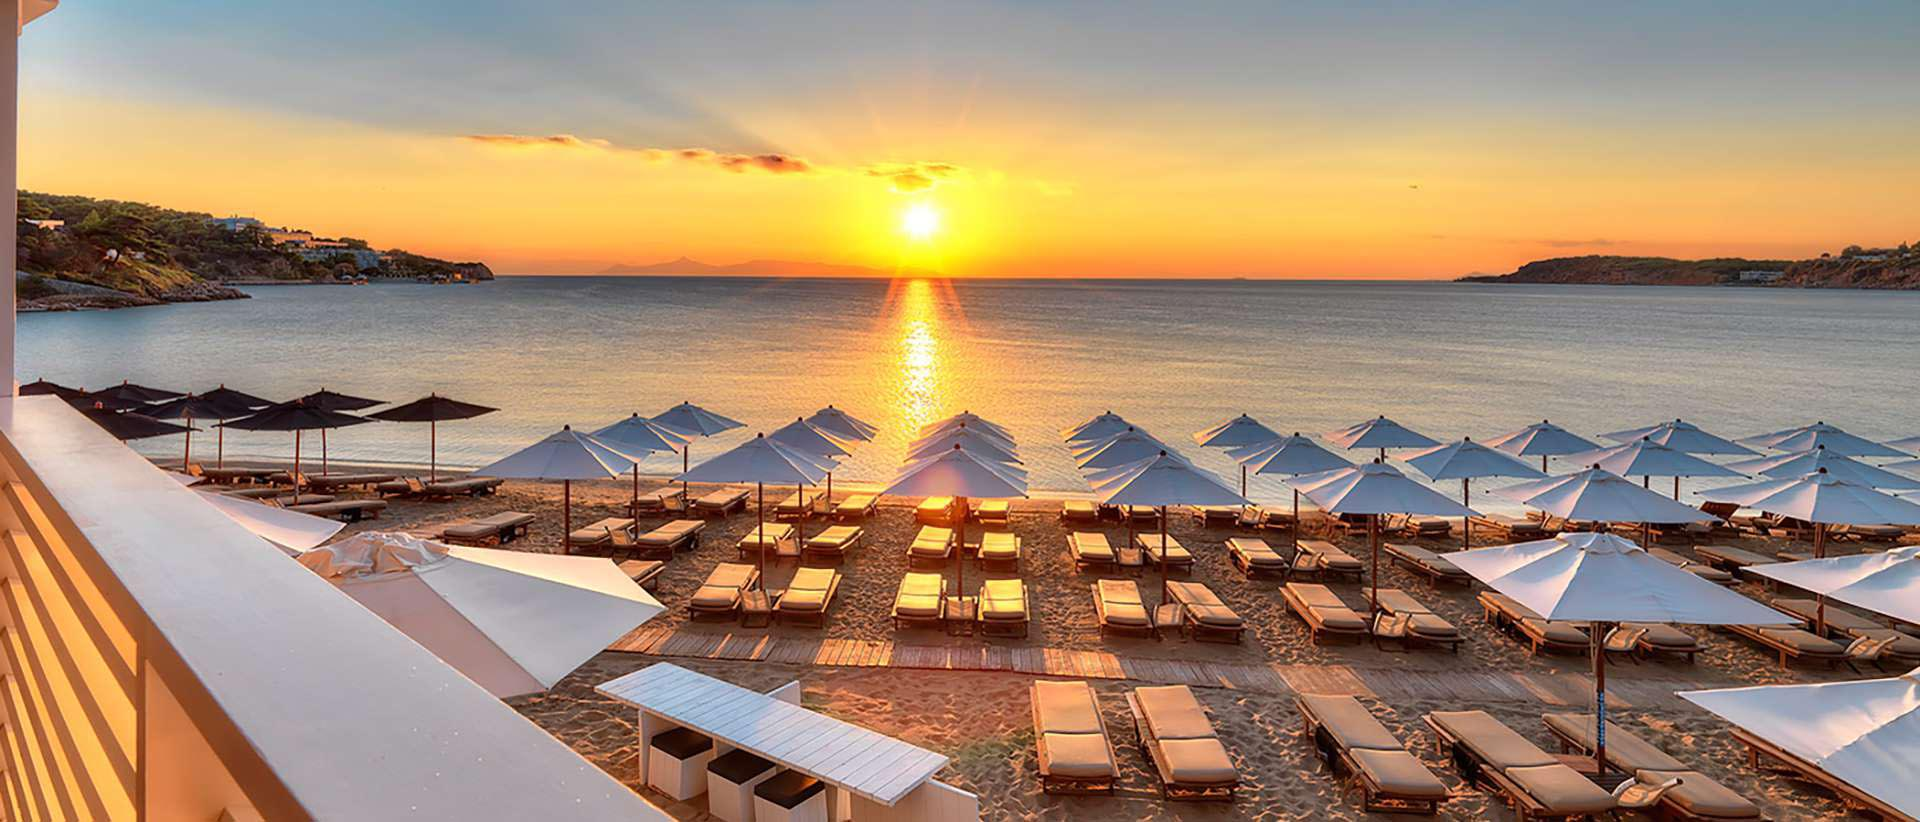 With a maximum occupancy of 1.000 people at any given moment, Astir beach is the most luxurious beach you can find close to Athens. Source: plazz.gr